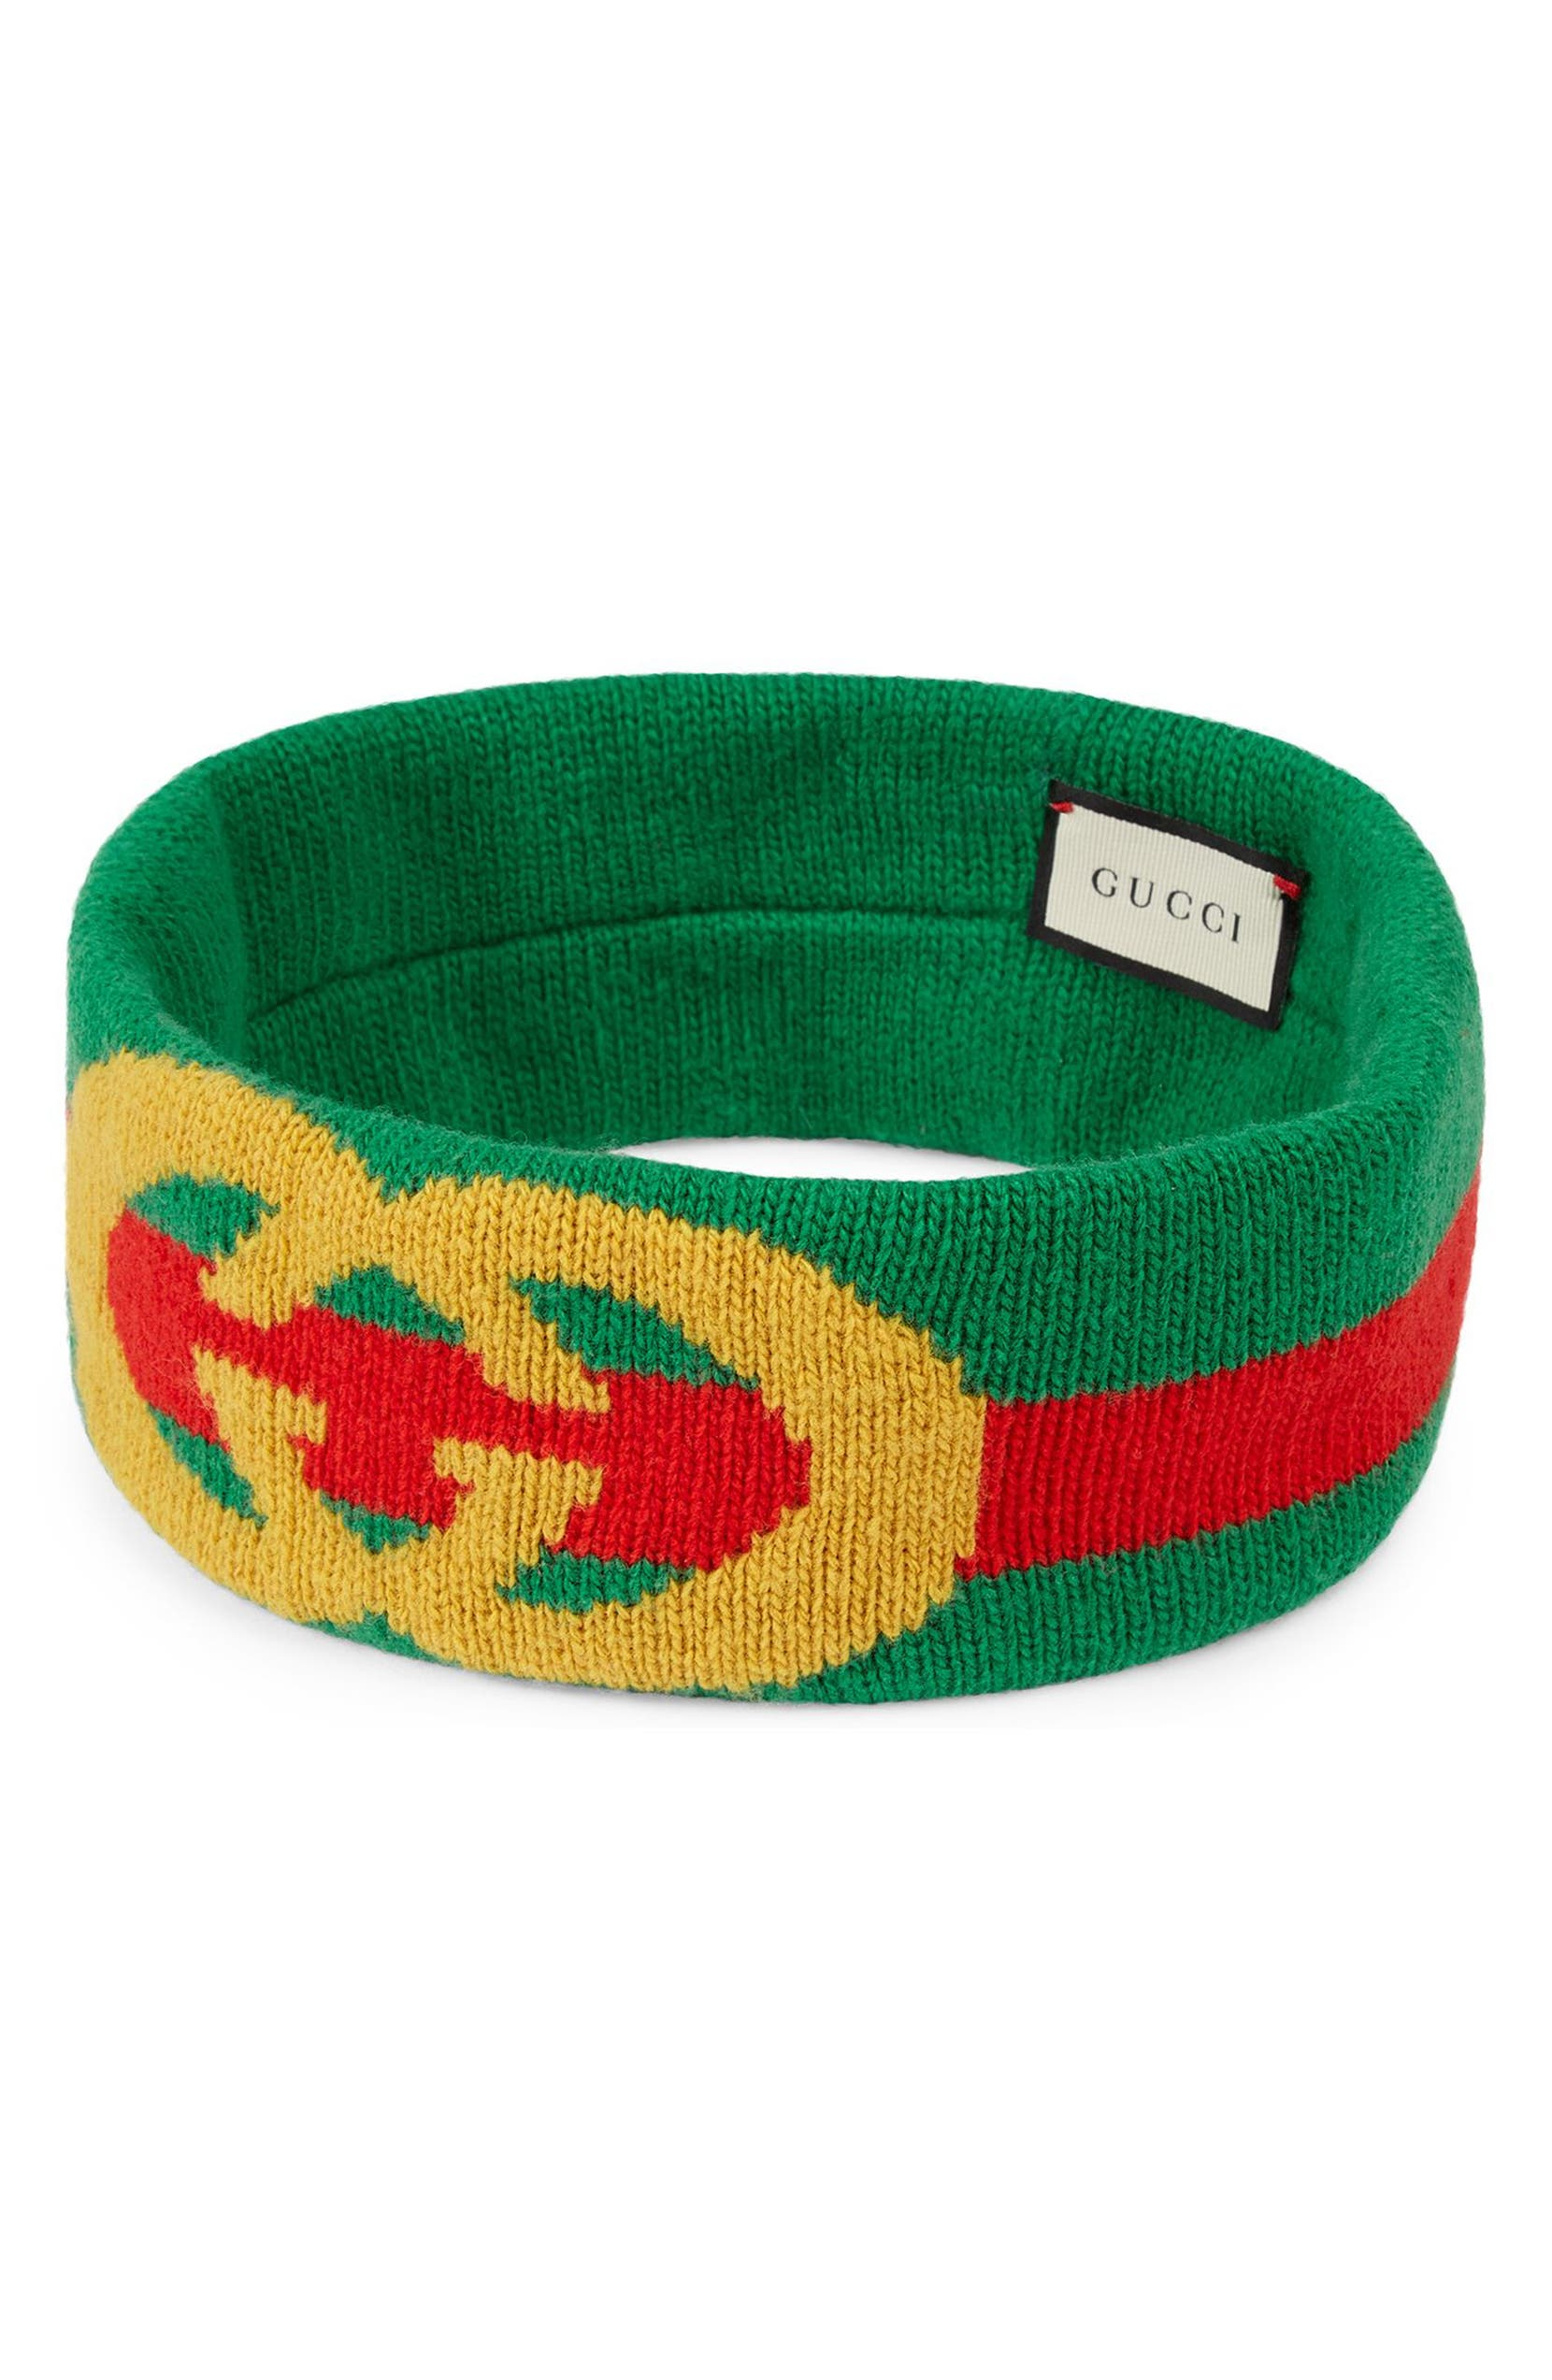 8e8594e9e68 Gucci GG Lock Web Headband